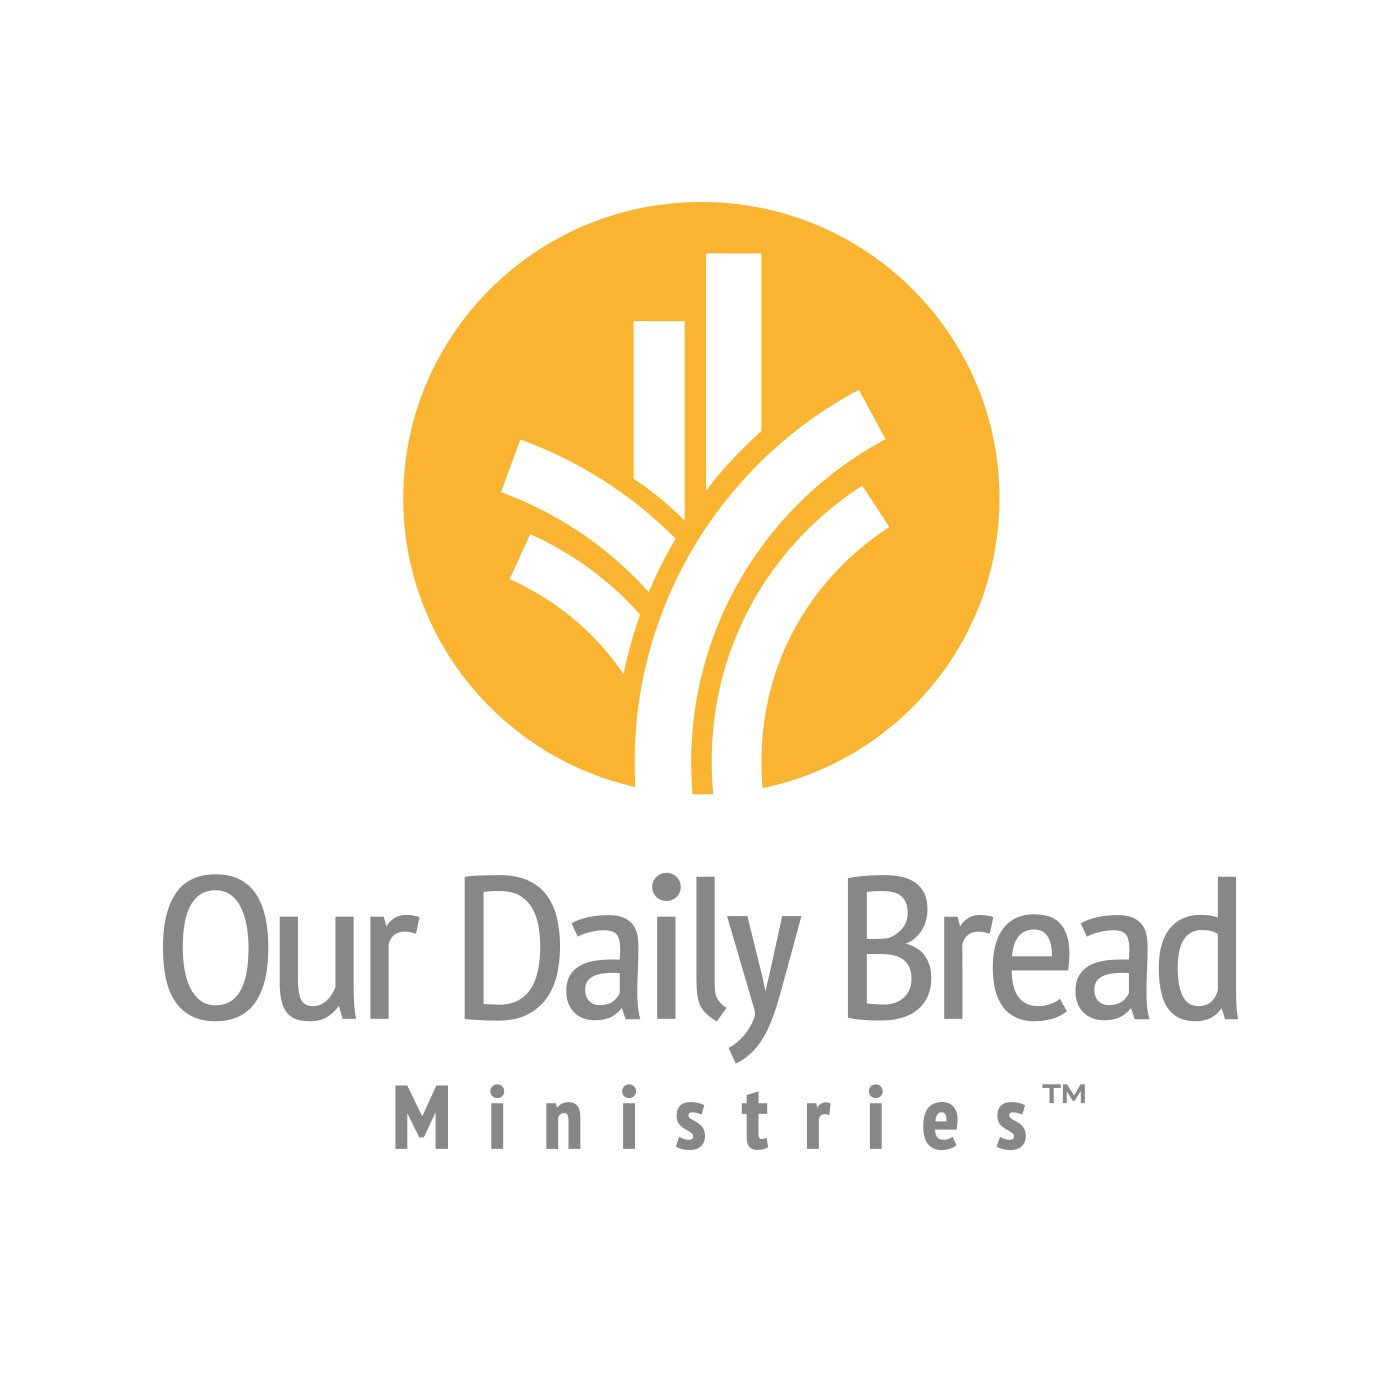 Our Daily Bread 30th December 2020, Our Daily Bread 30th December 2020 Devotional – True Success, Latest Nigeria News, Daily Devotionals & Celebrity Gossips - Chidispalace